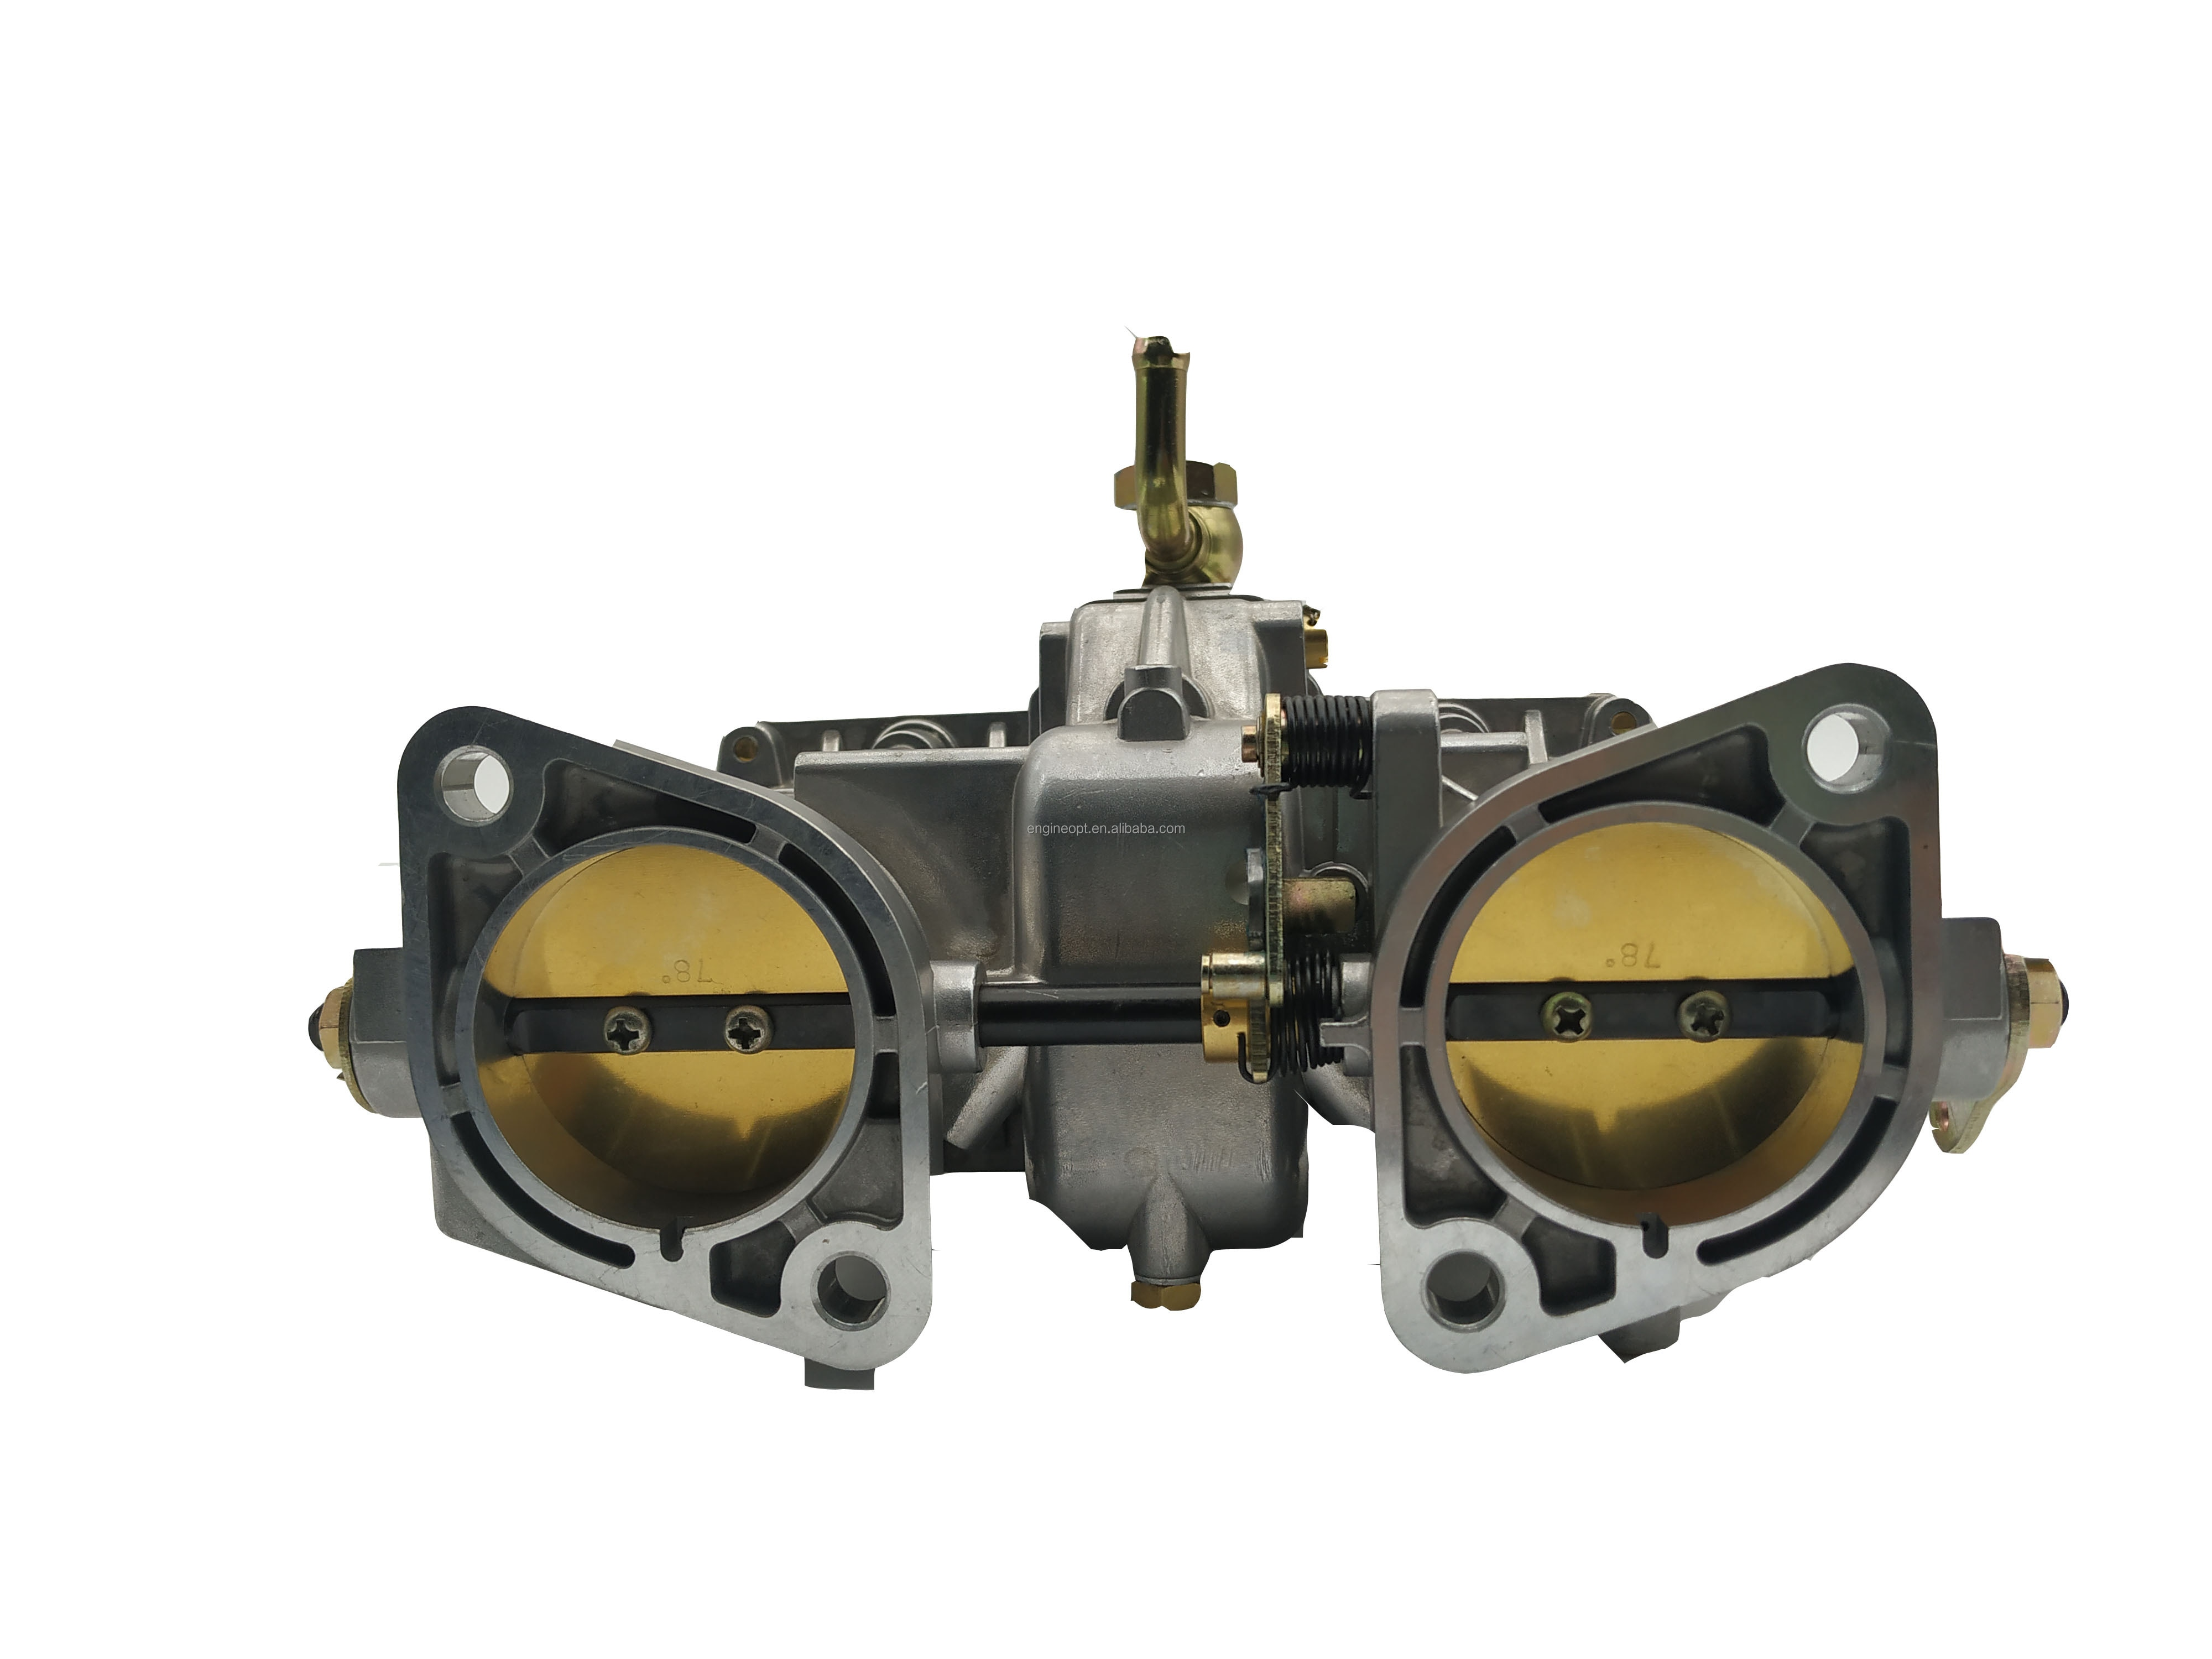 OPT STOCK New 48IDA CARBURETOR WITH TWO GASKETS FOR FIAT VOLKSWAGEN WEBER 19030.018 19030.015  - buy with discount